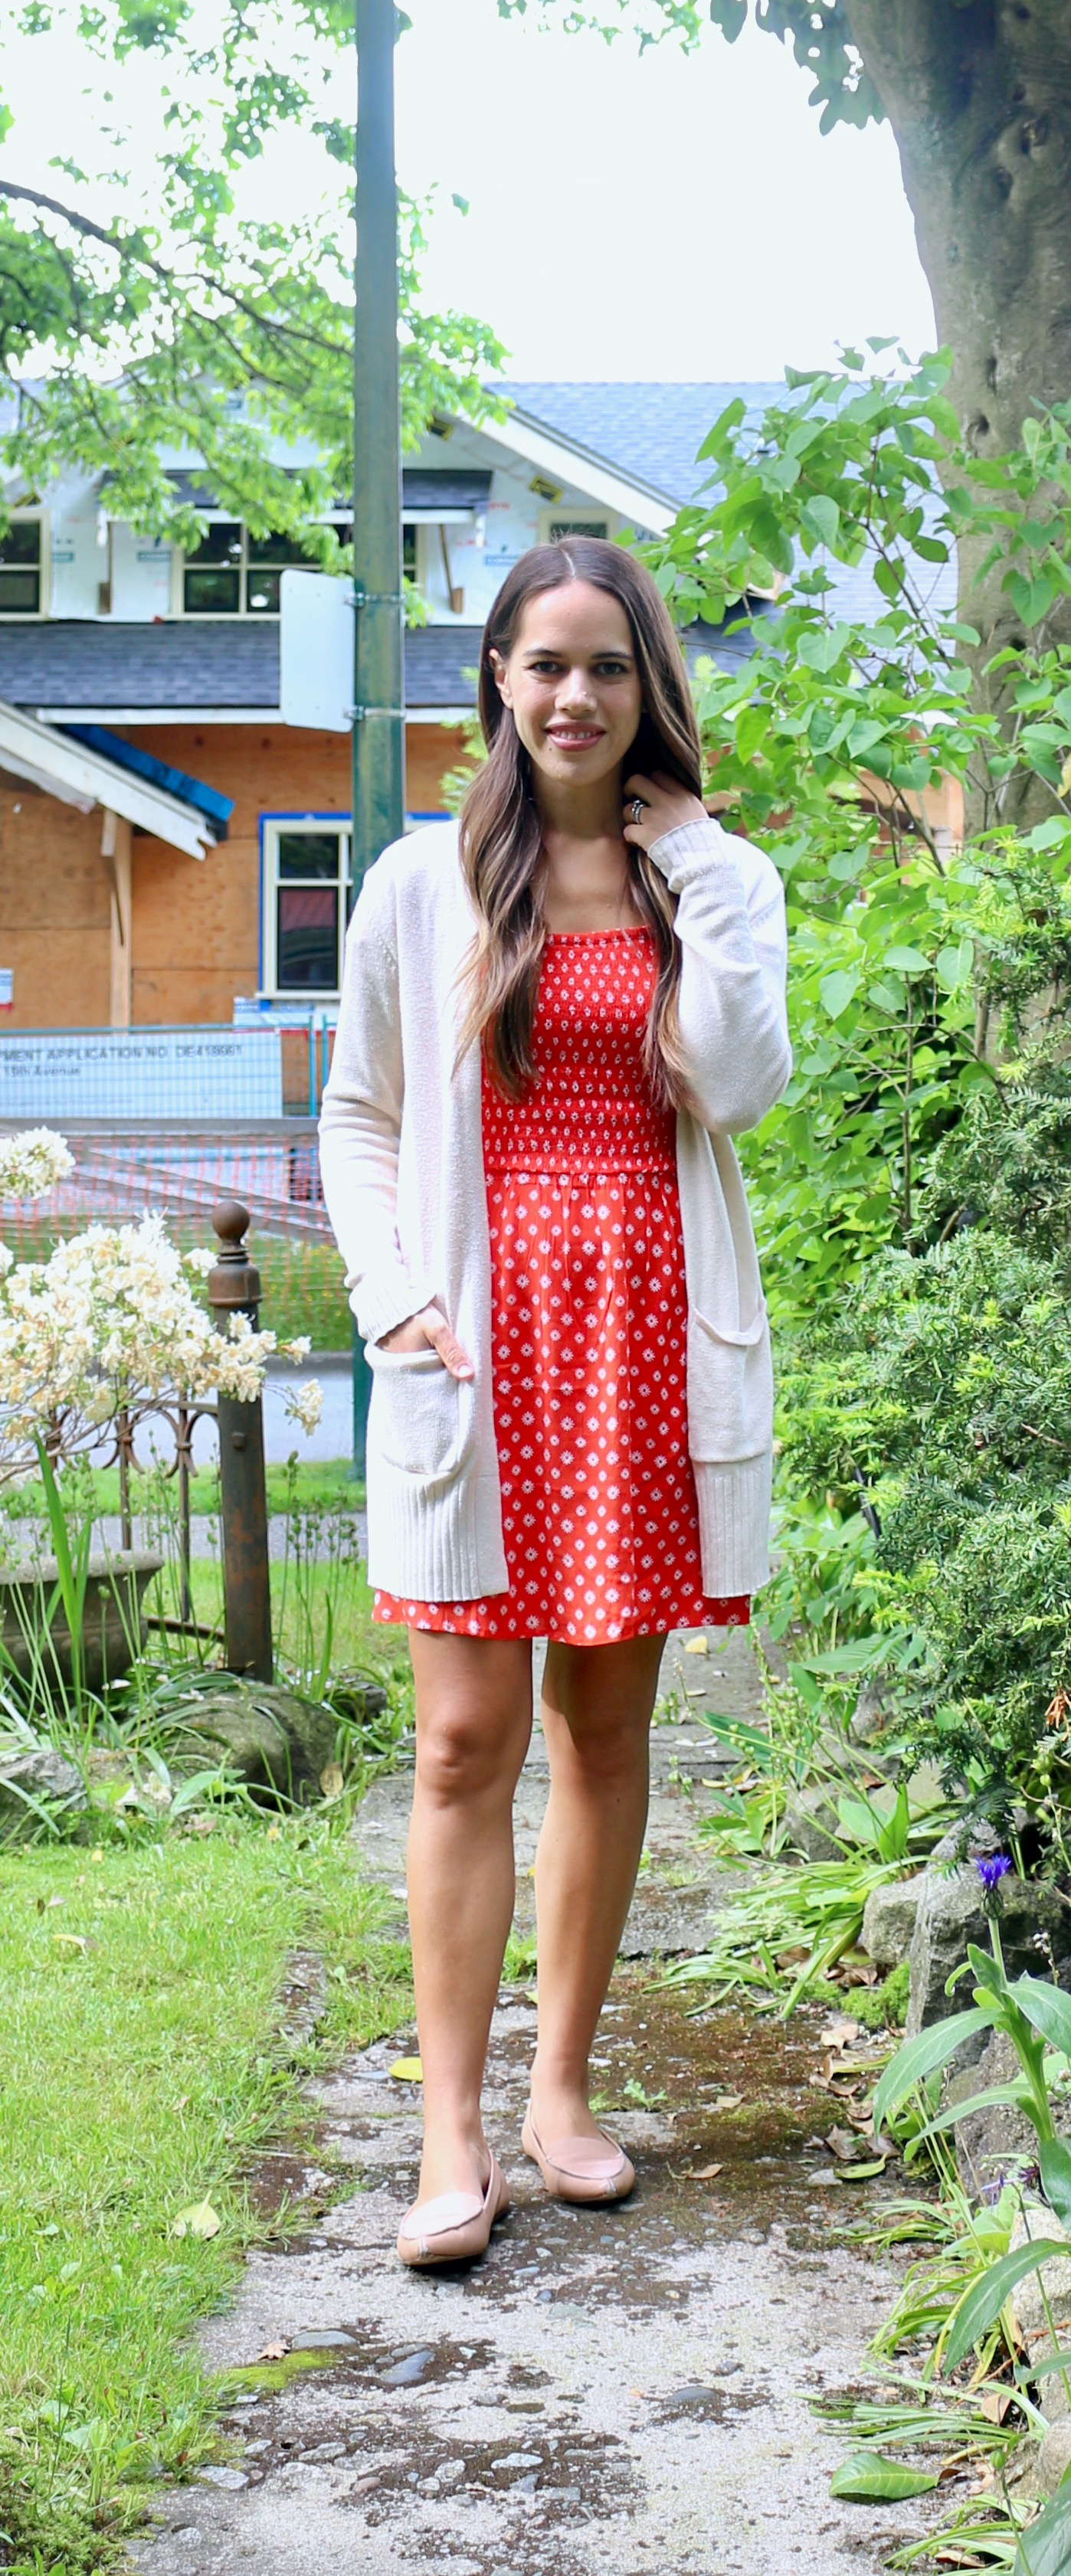 Jules in Flats - Smocked Floral Mini Dress (Easy Work from Home Outfit)